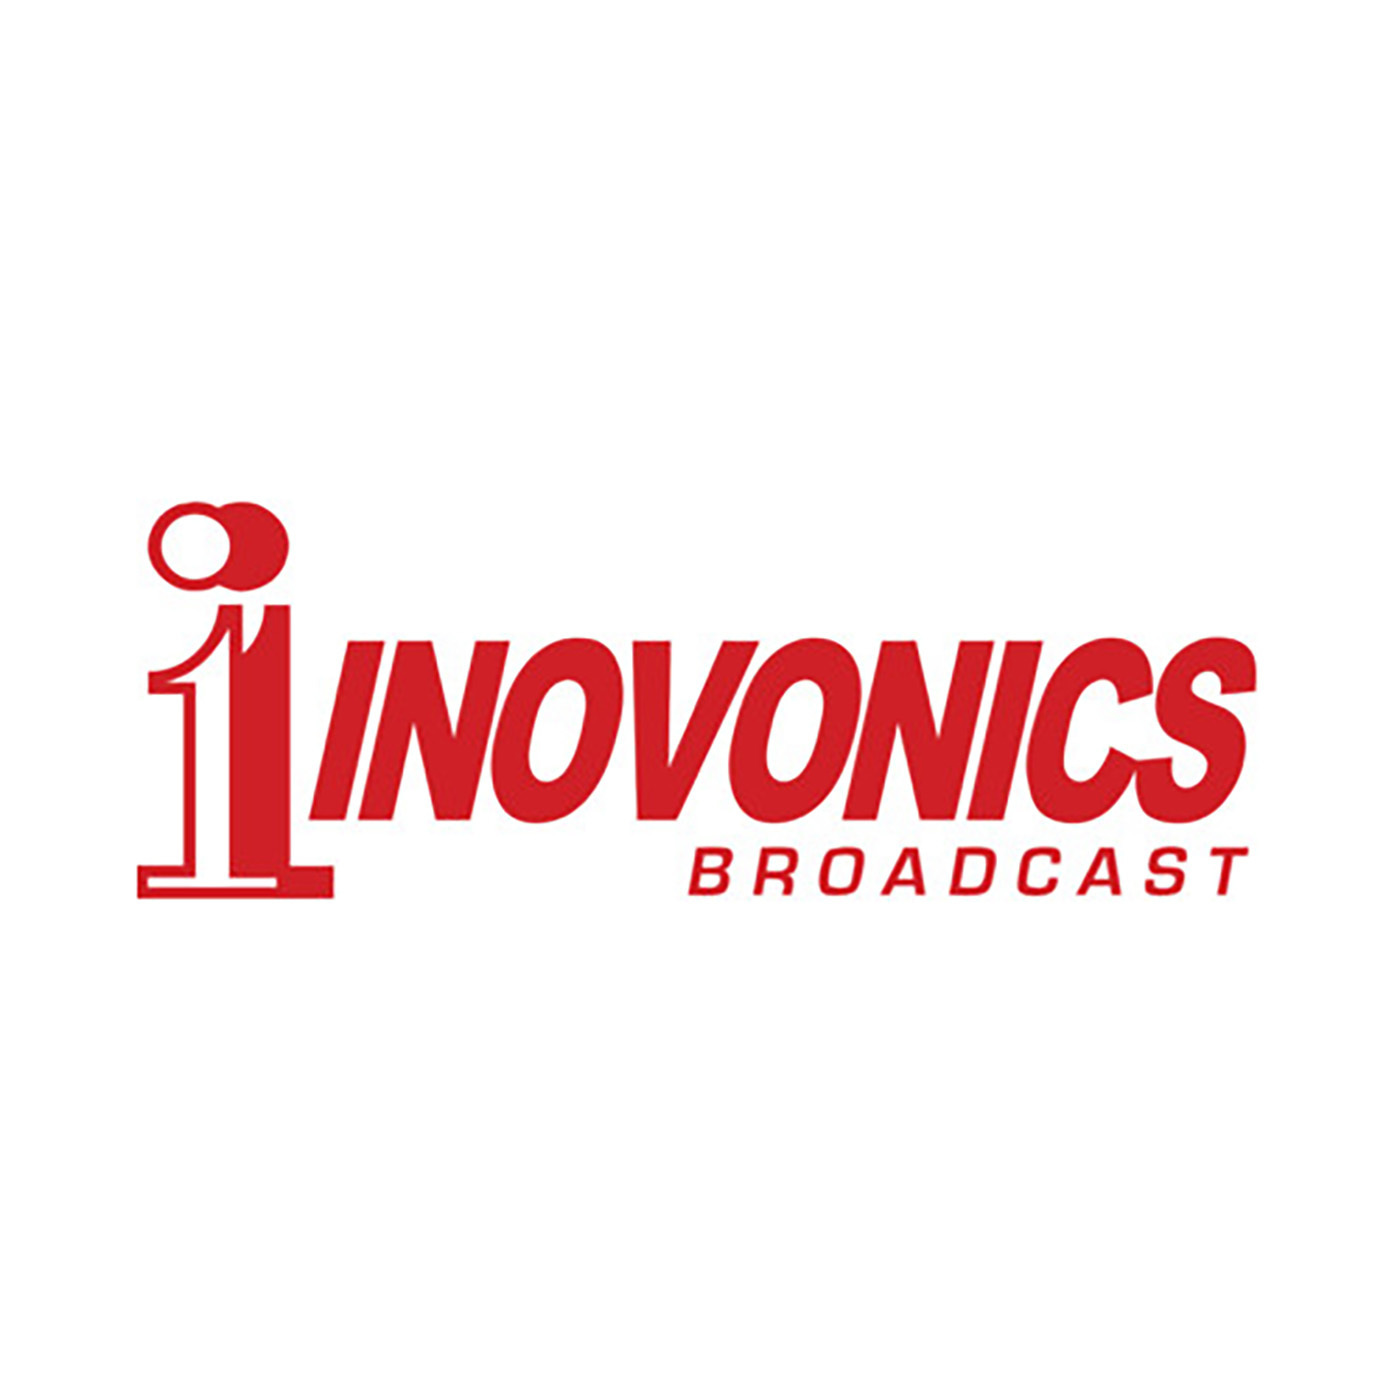 Remote Station Monitoring with Inovonics CEO Ben Barber